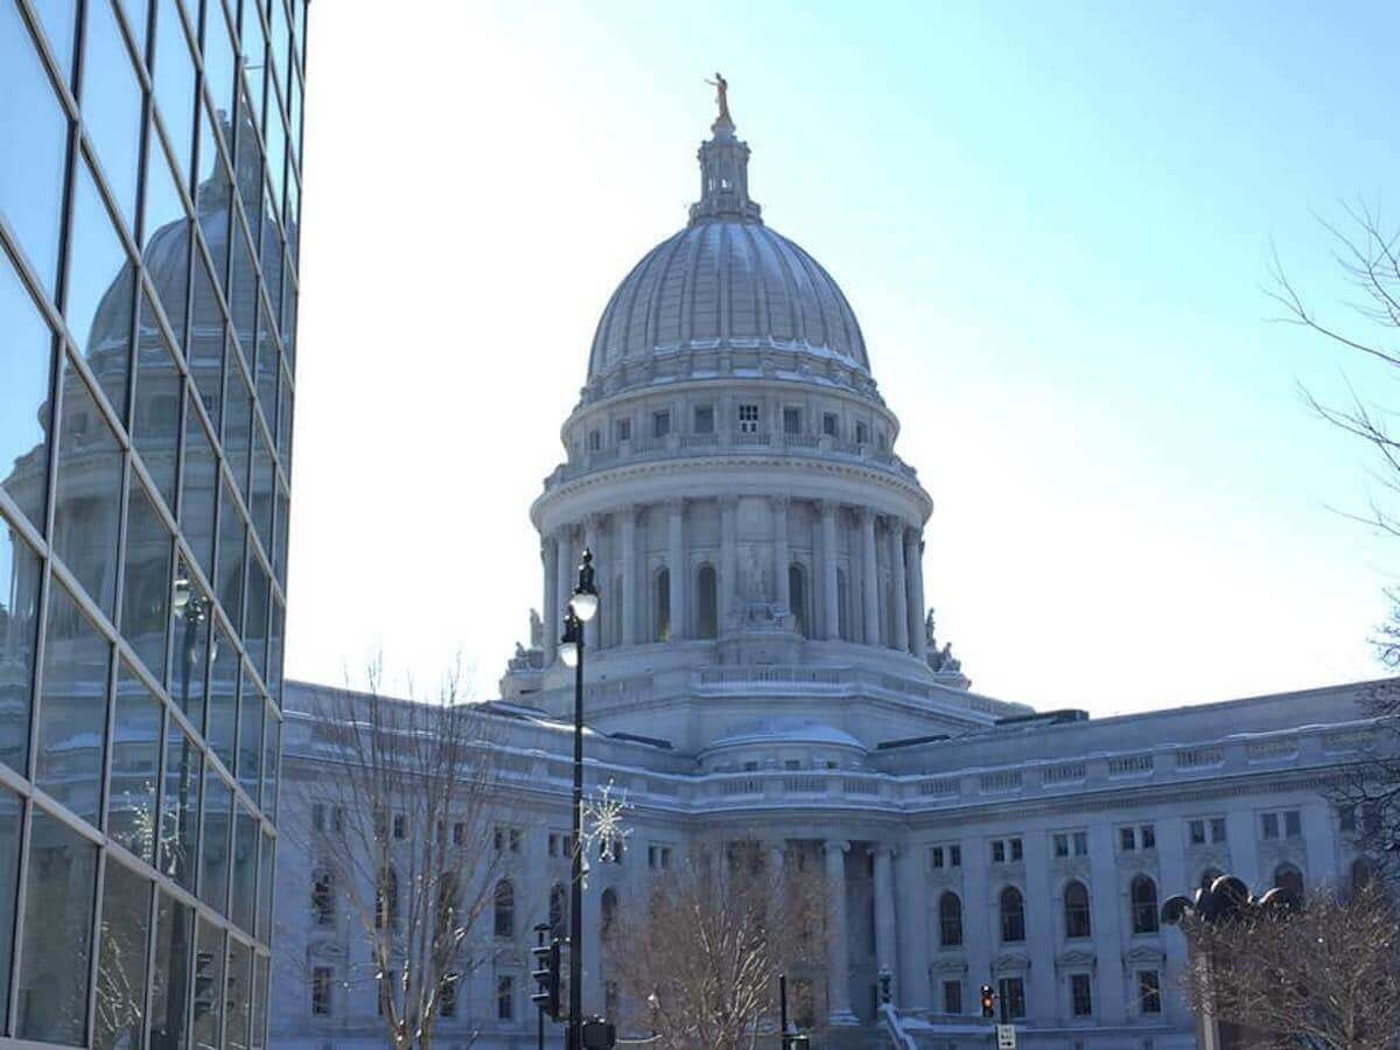 The state Capitol in Madison is reflected off the windows of an office building across the street. (Photo by Julian Emerson)